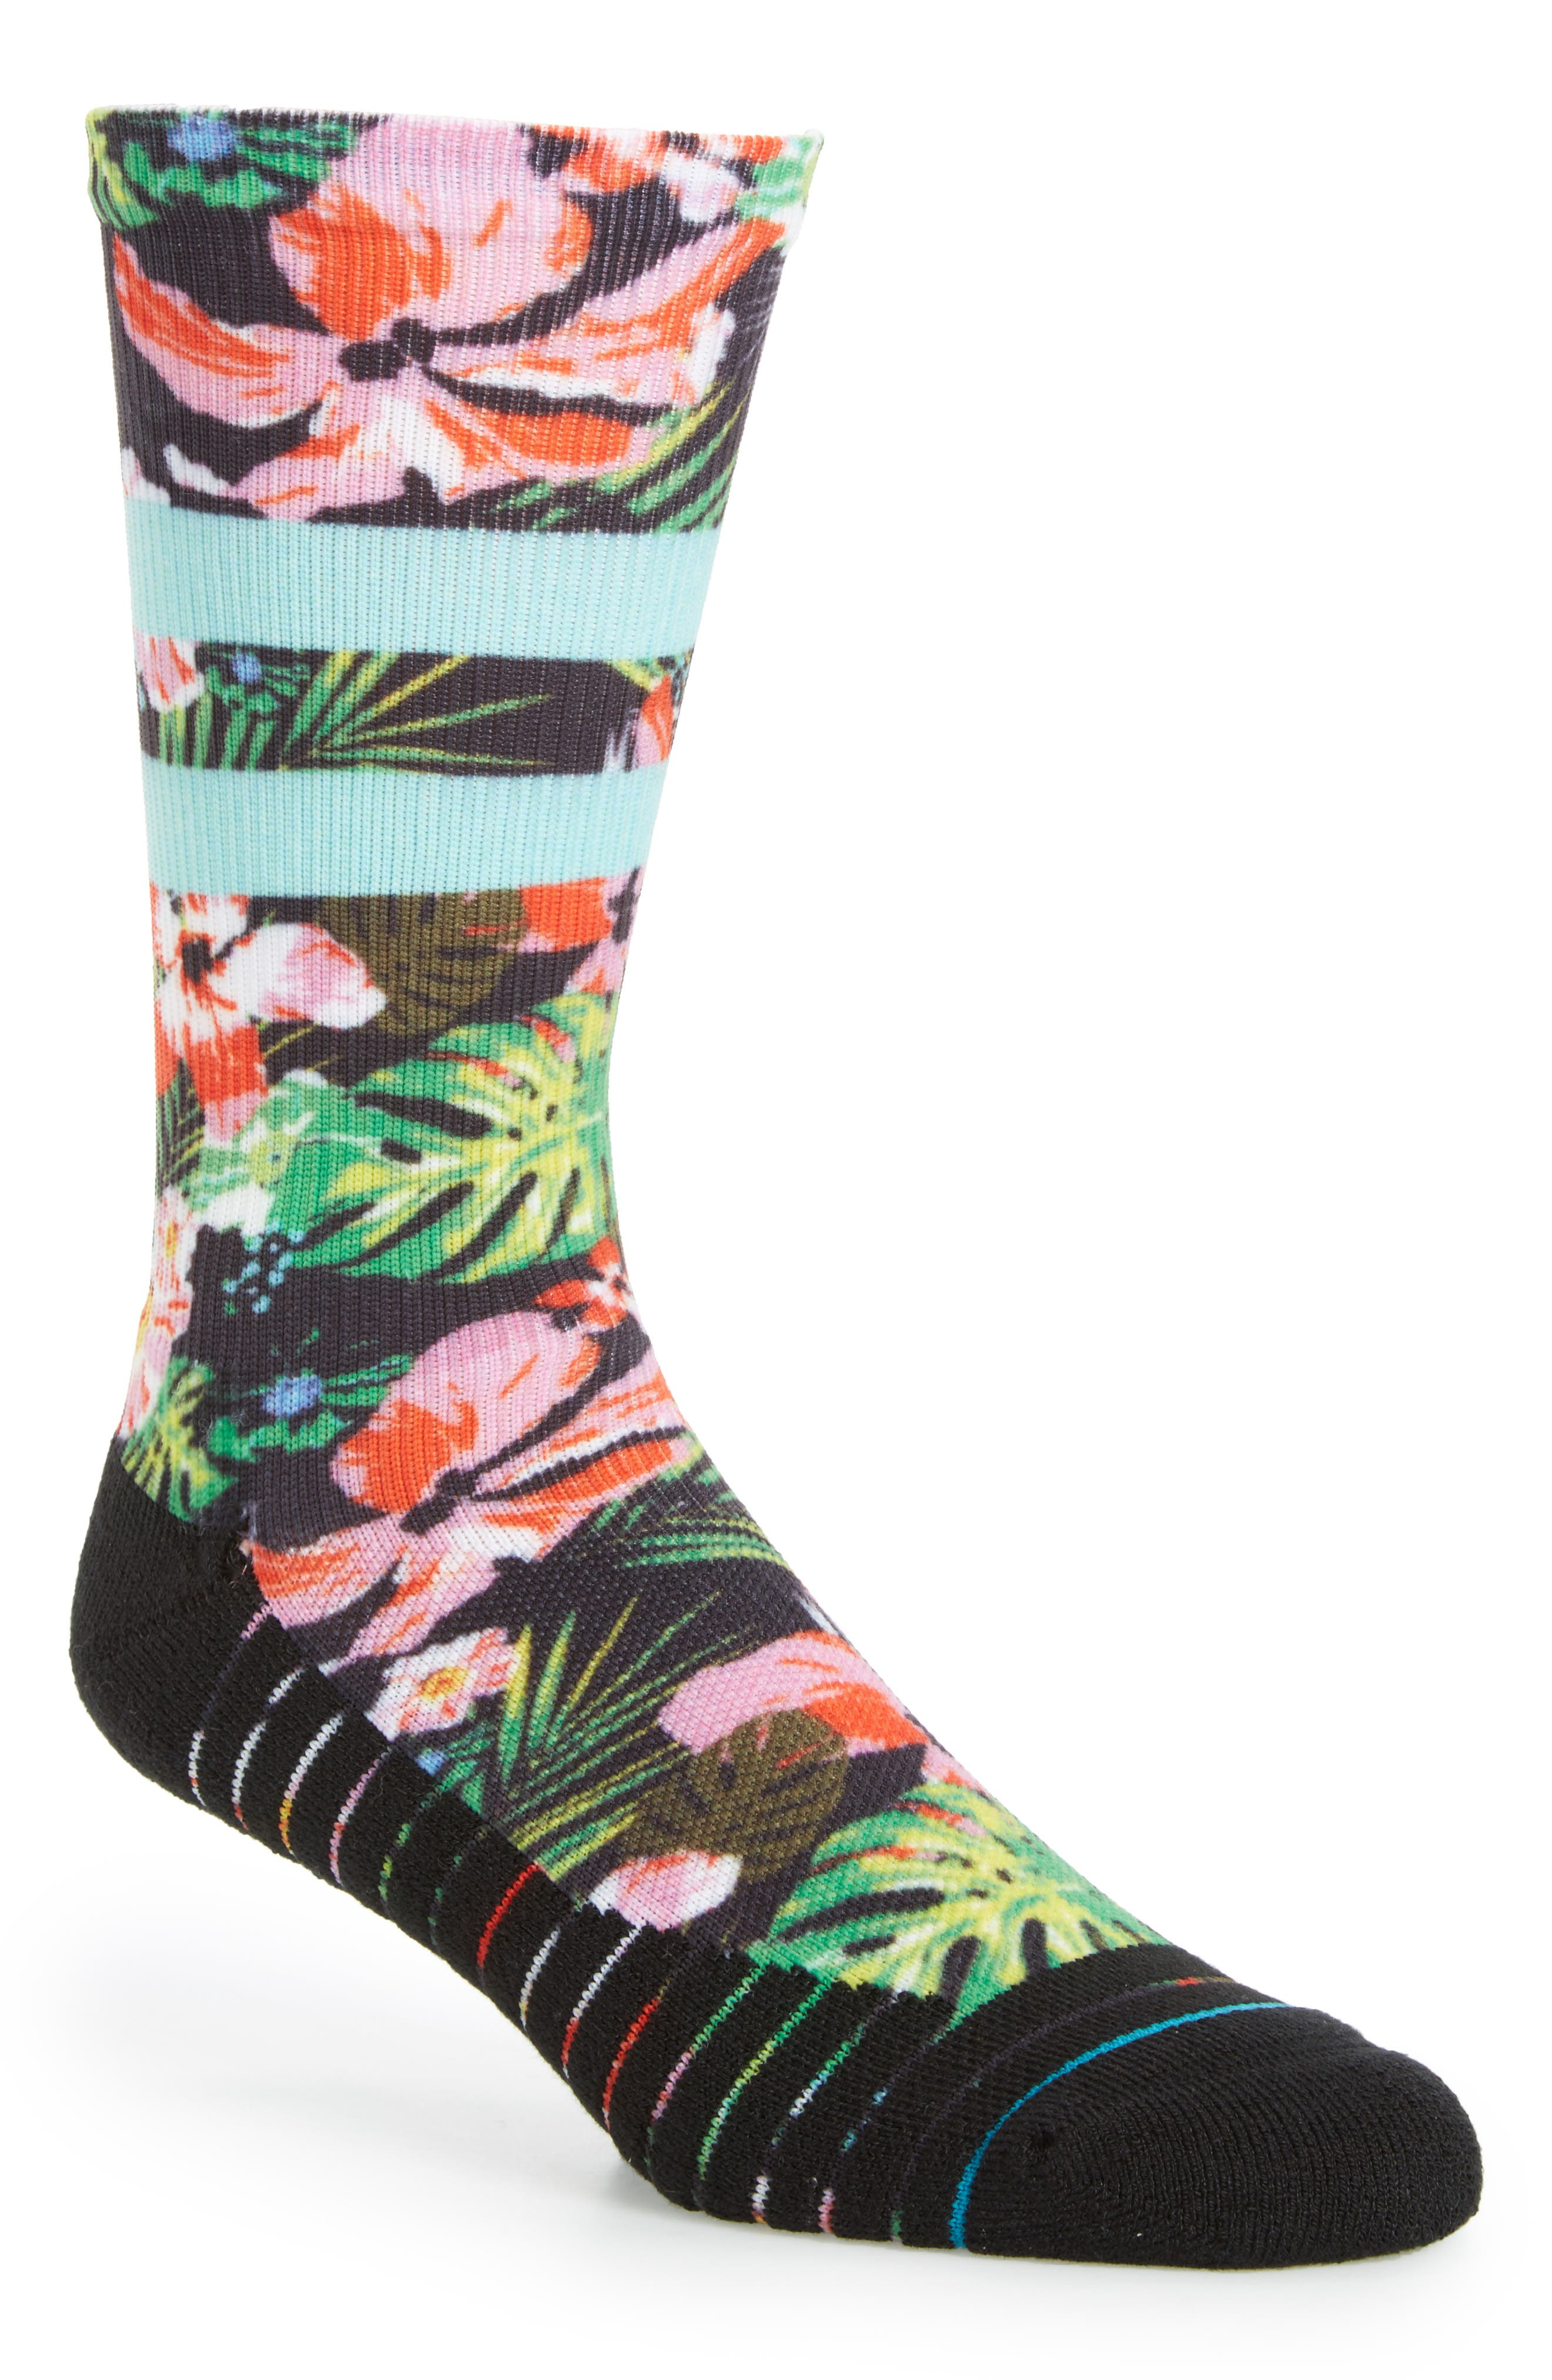 Stance Hyberics Athletic Crew Socks